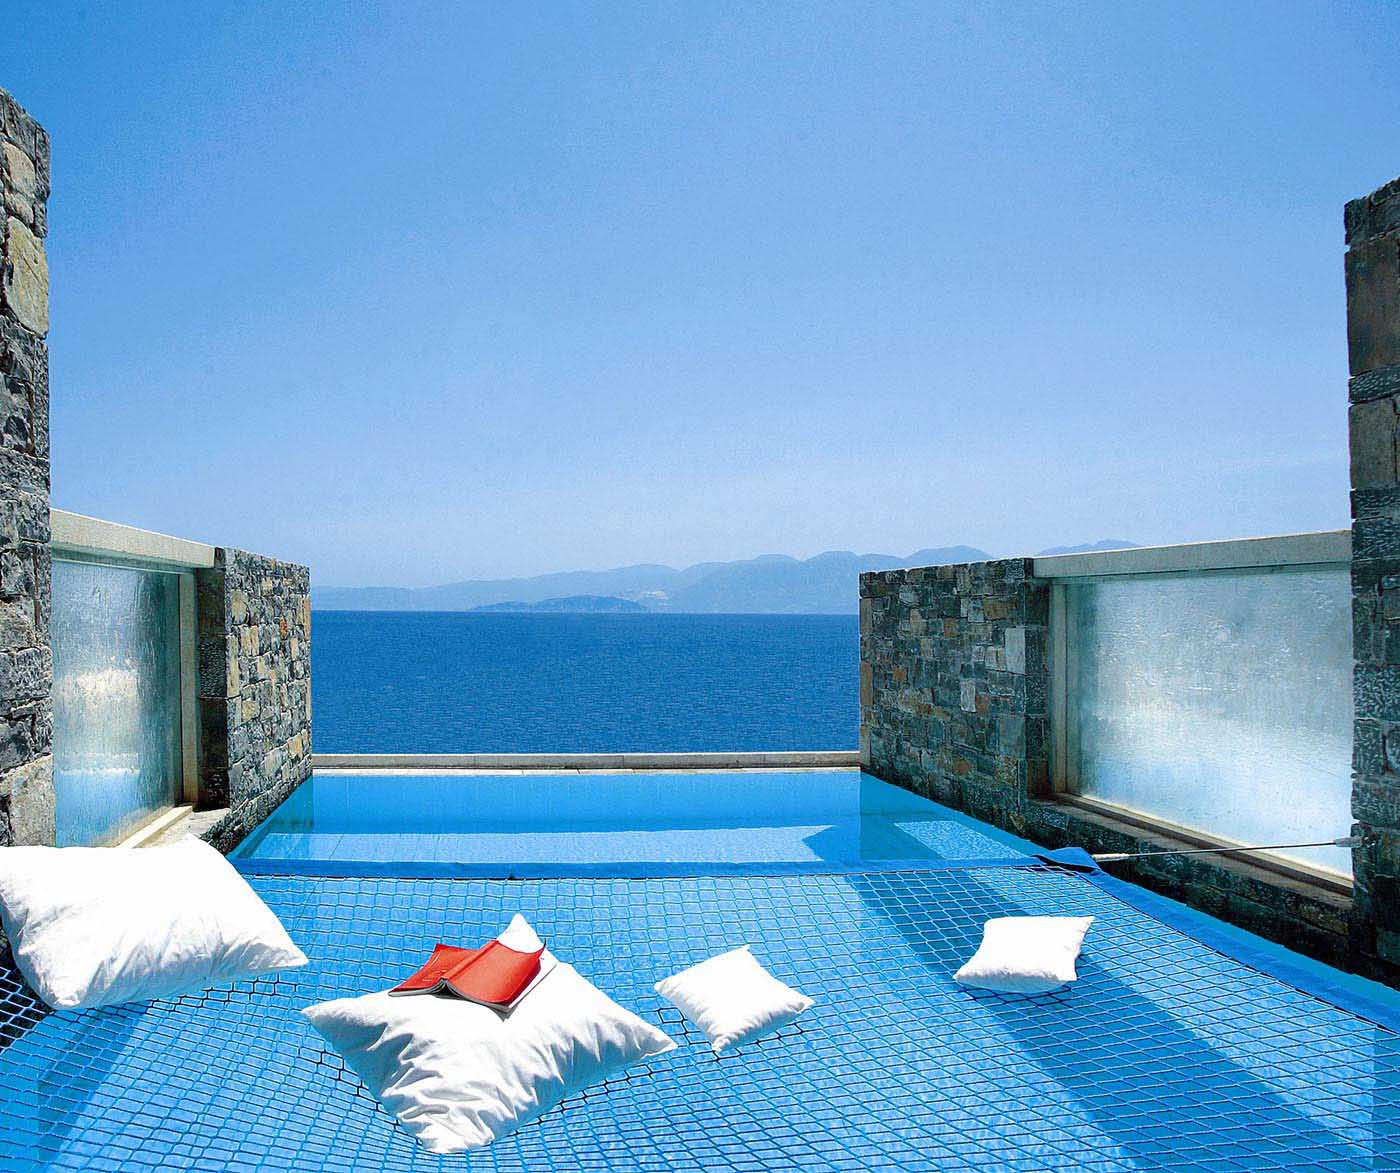 Heraklion City hotels & resorts, 50% discount for early bookings, Heraklion City, Heraklion, Crete, Greece